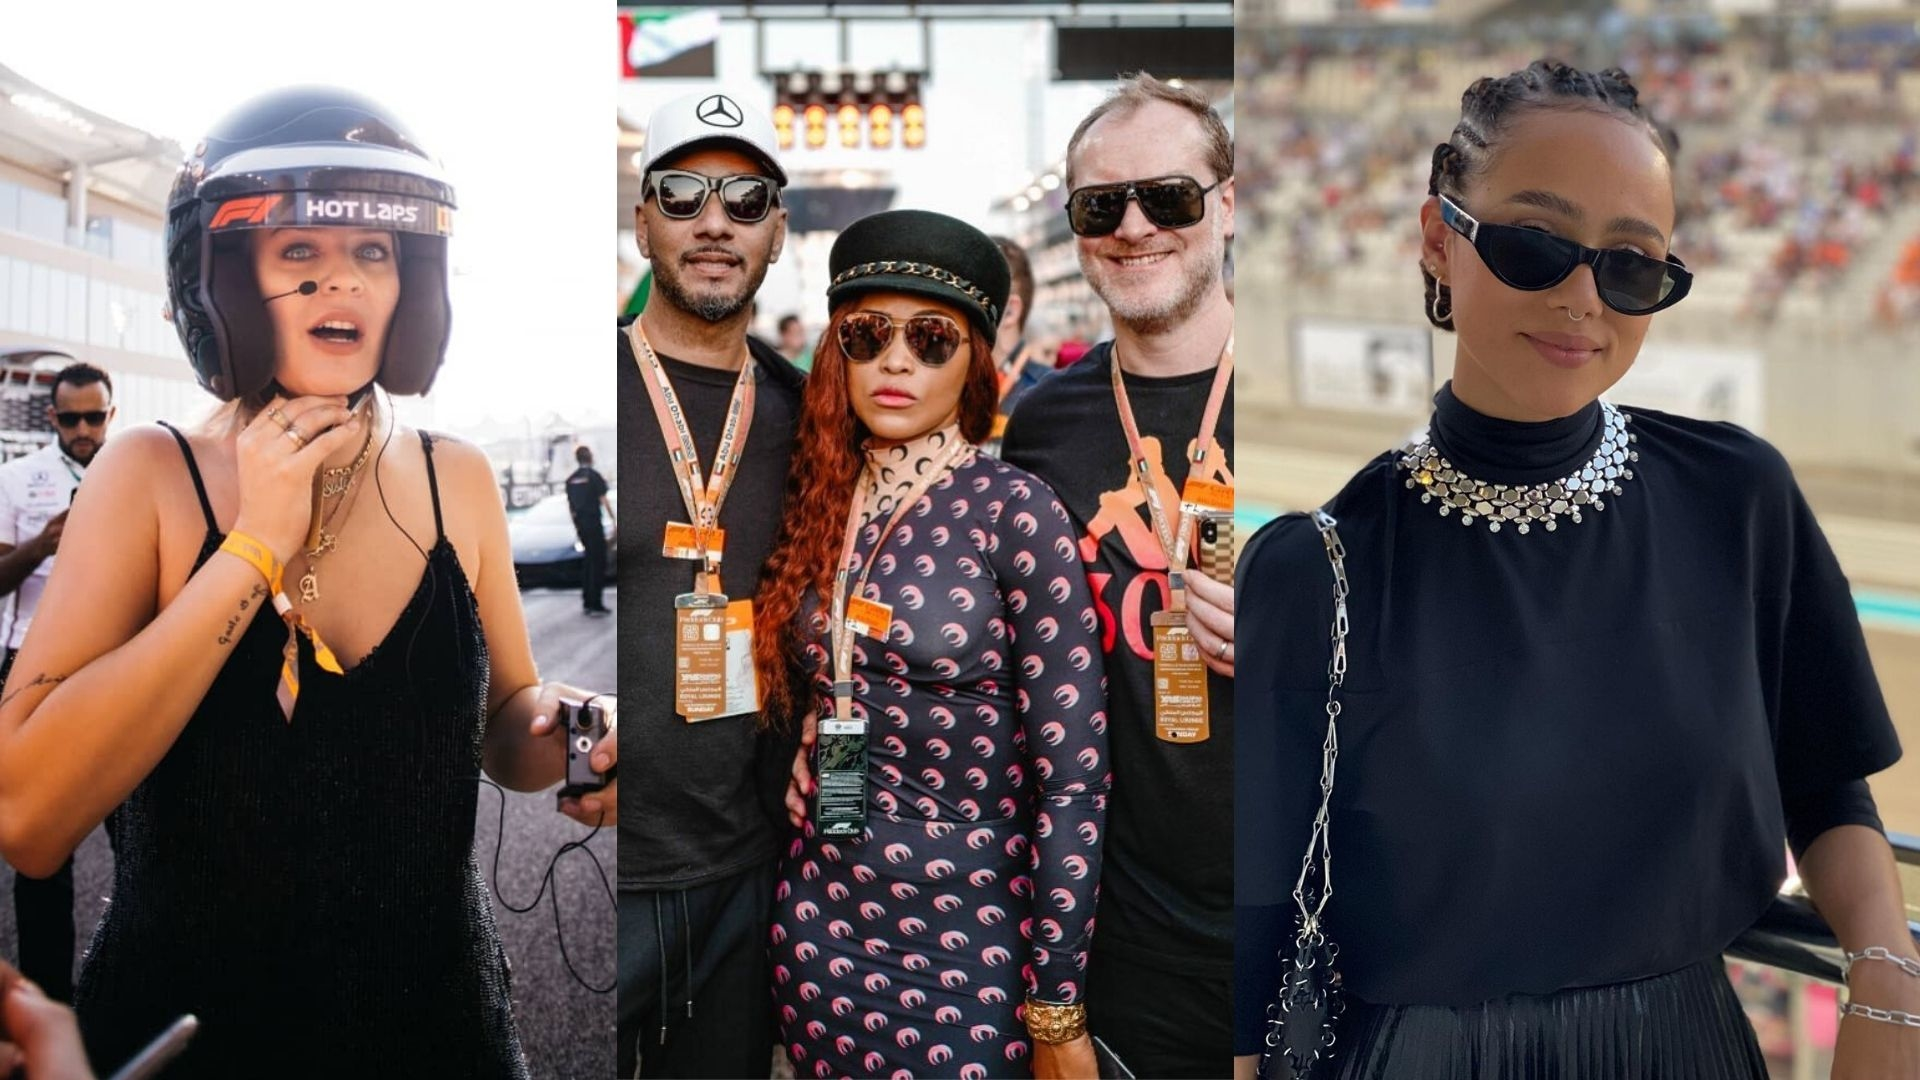 All The Celebs We Spotted At The F1